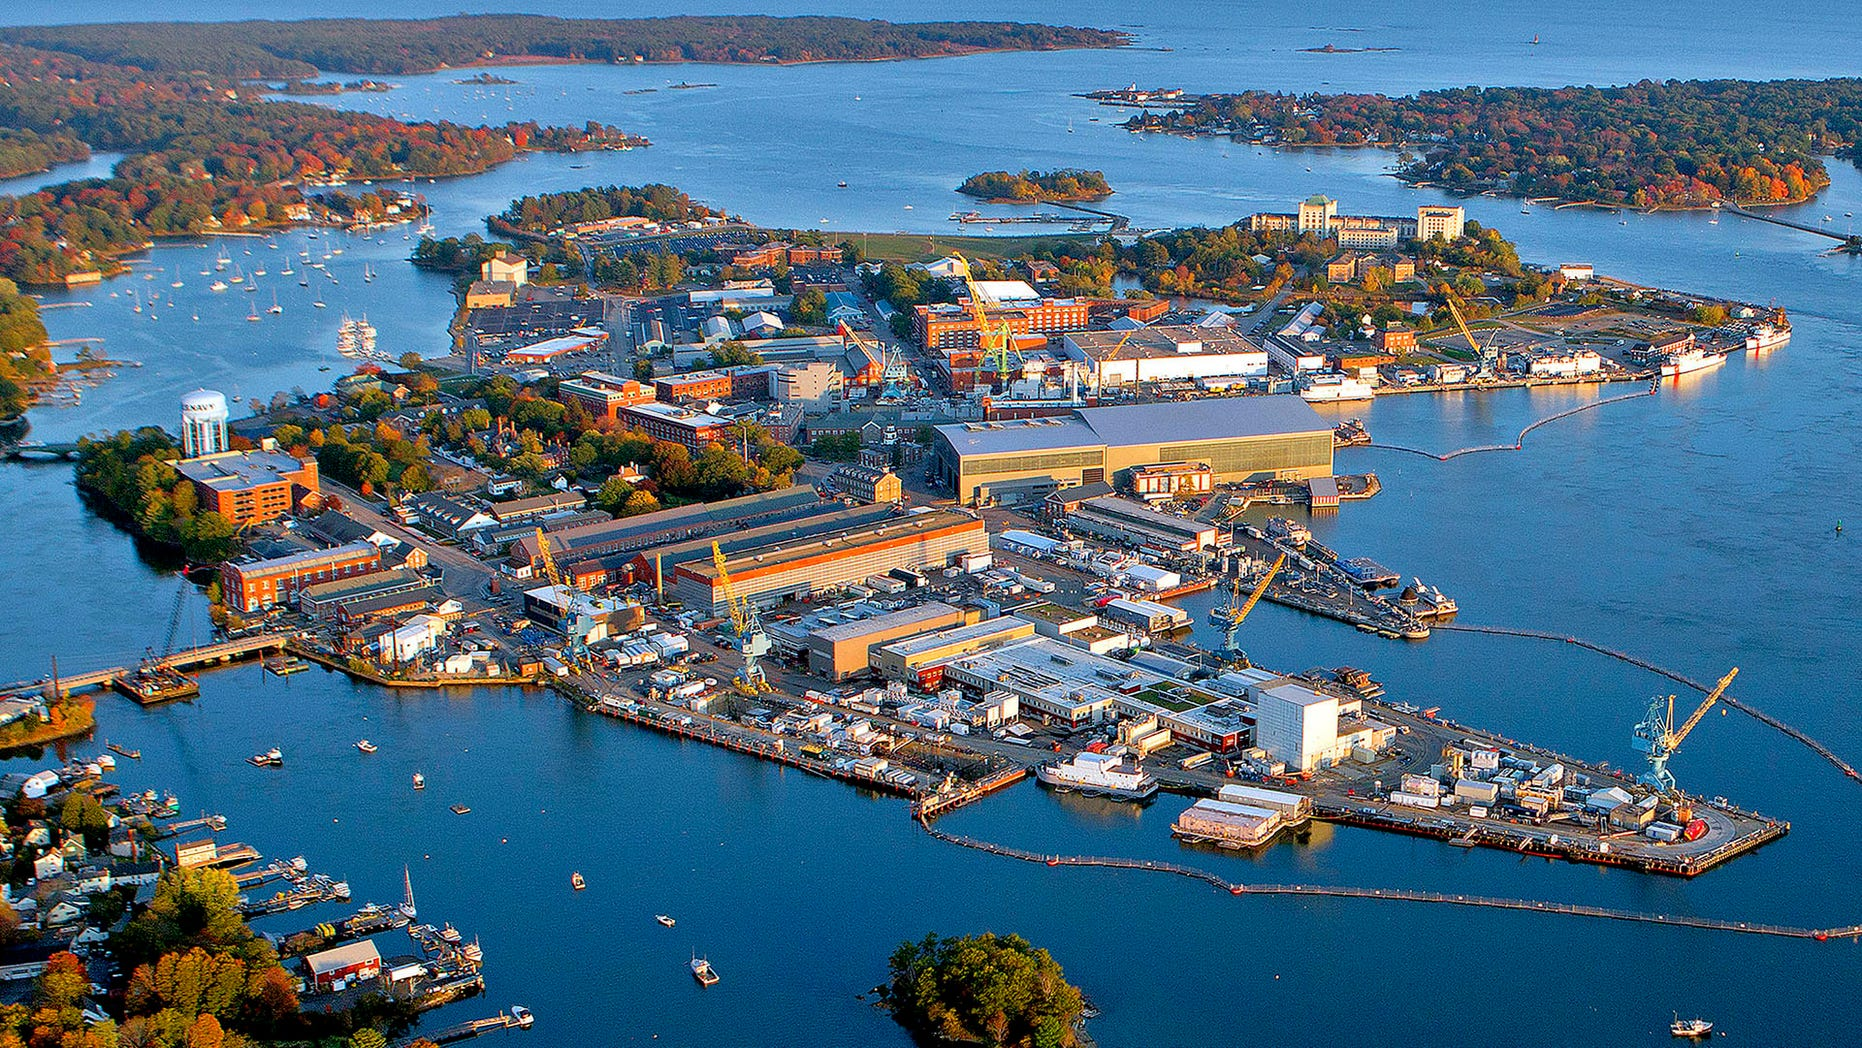 Latest aerial view of Portsmouth Naval Shipyard, America's oldest continuously operating naval shipyard. The shipyard is the Navy's center of excellence for attack submarine overhaul, repair and modernization.